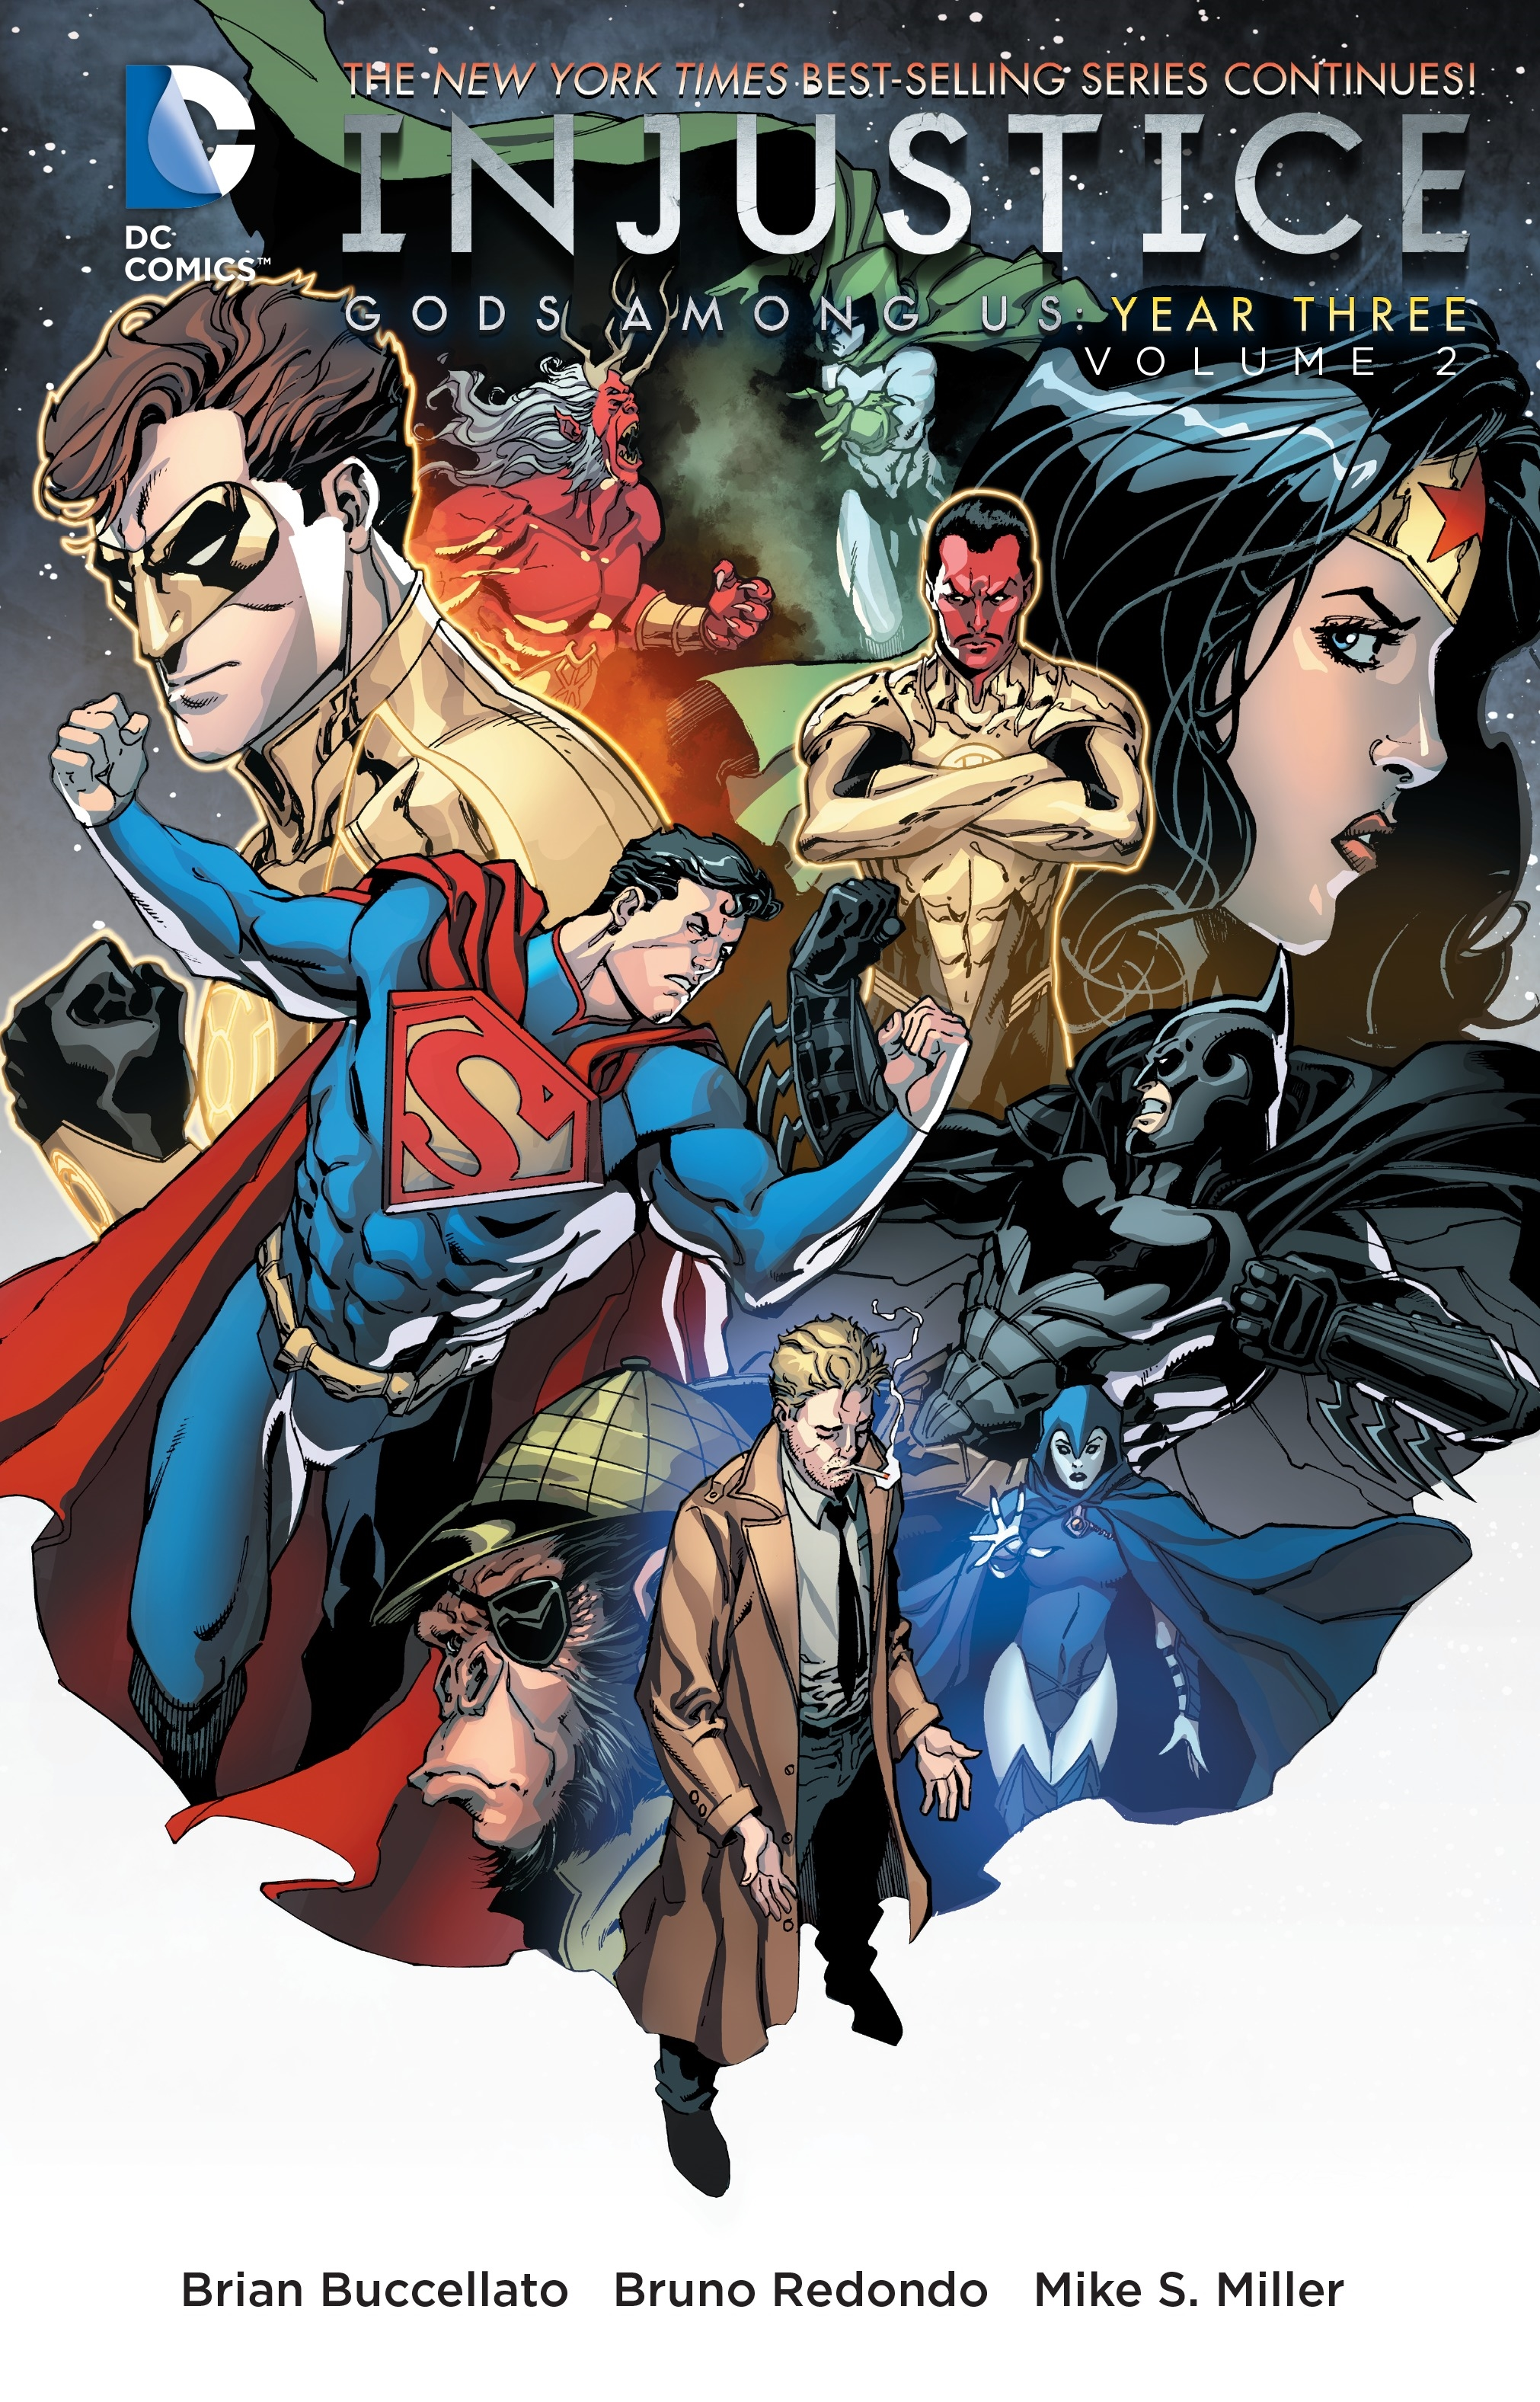 Injustice Gods Among Us Year 3 Vol  2 by Brian Buccellatio - Penguin